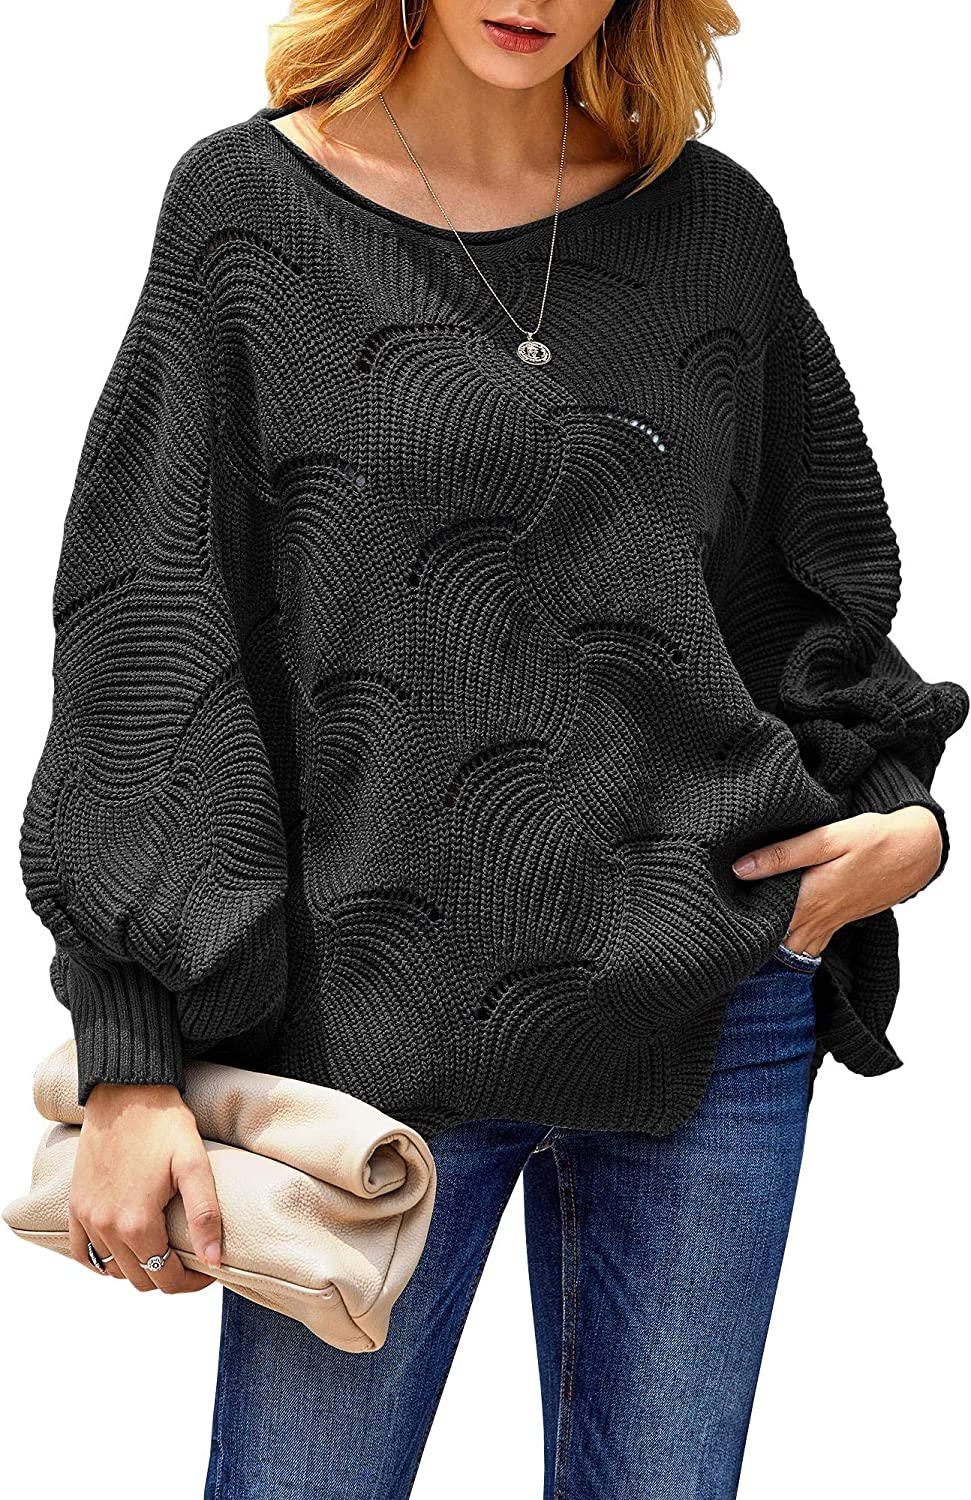 RUIVE Women/'s One Shoulder Knitted Top Pullover Patchwork Large Size Loose Long Batwing Sleeve Jumper Ladies Sweater Blue